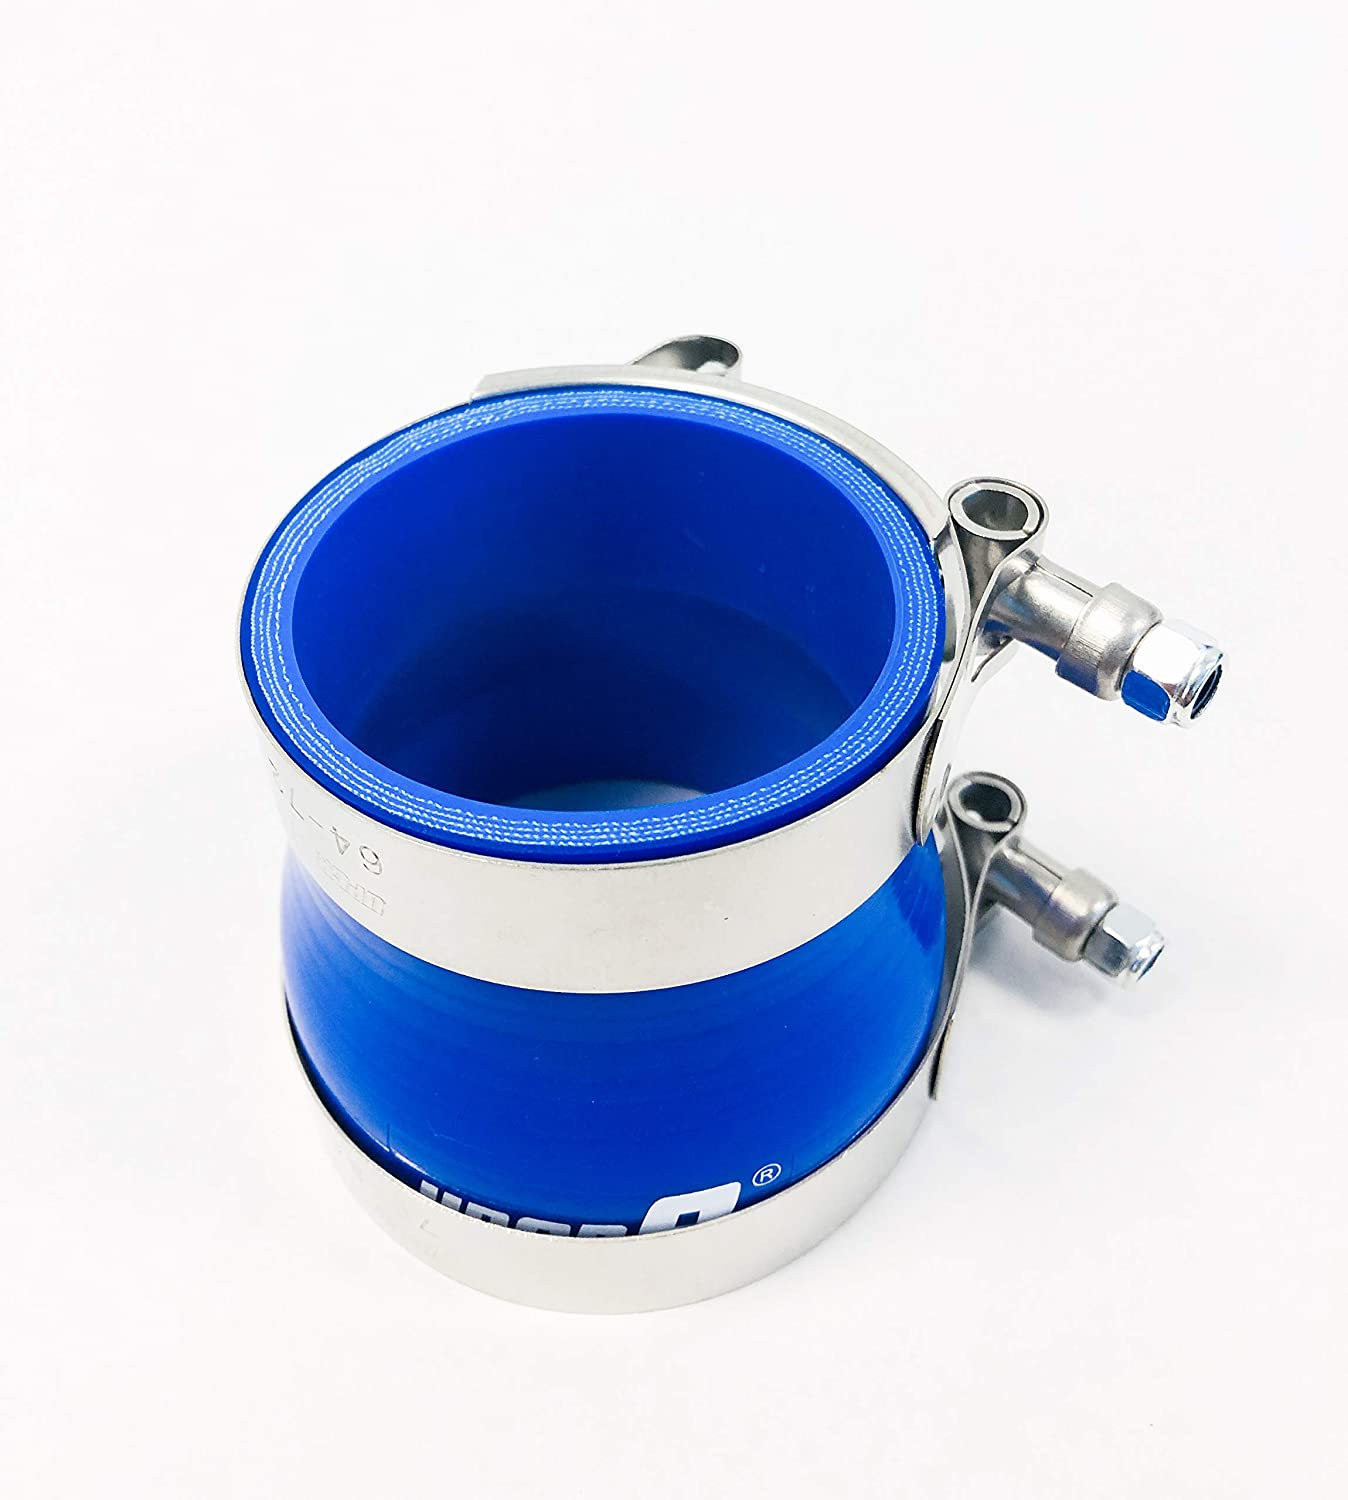 T Bolt Clamp Upgr8 Universal 4-Ply High Performance 3 to 4 Straight Reducer Coupler Silicone Hose 76mm to 102mm 3-4 Blue